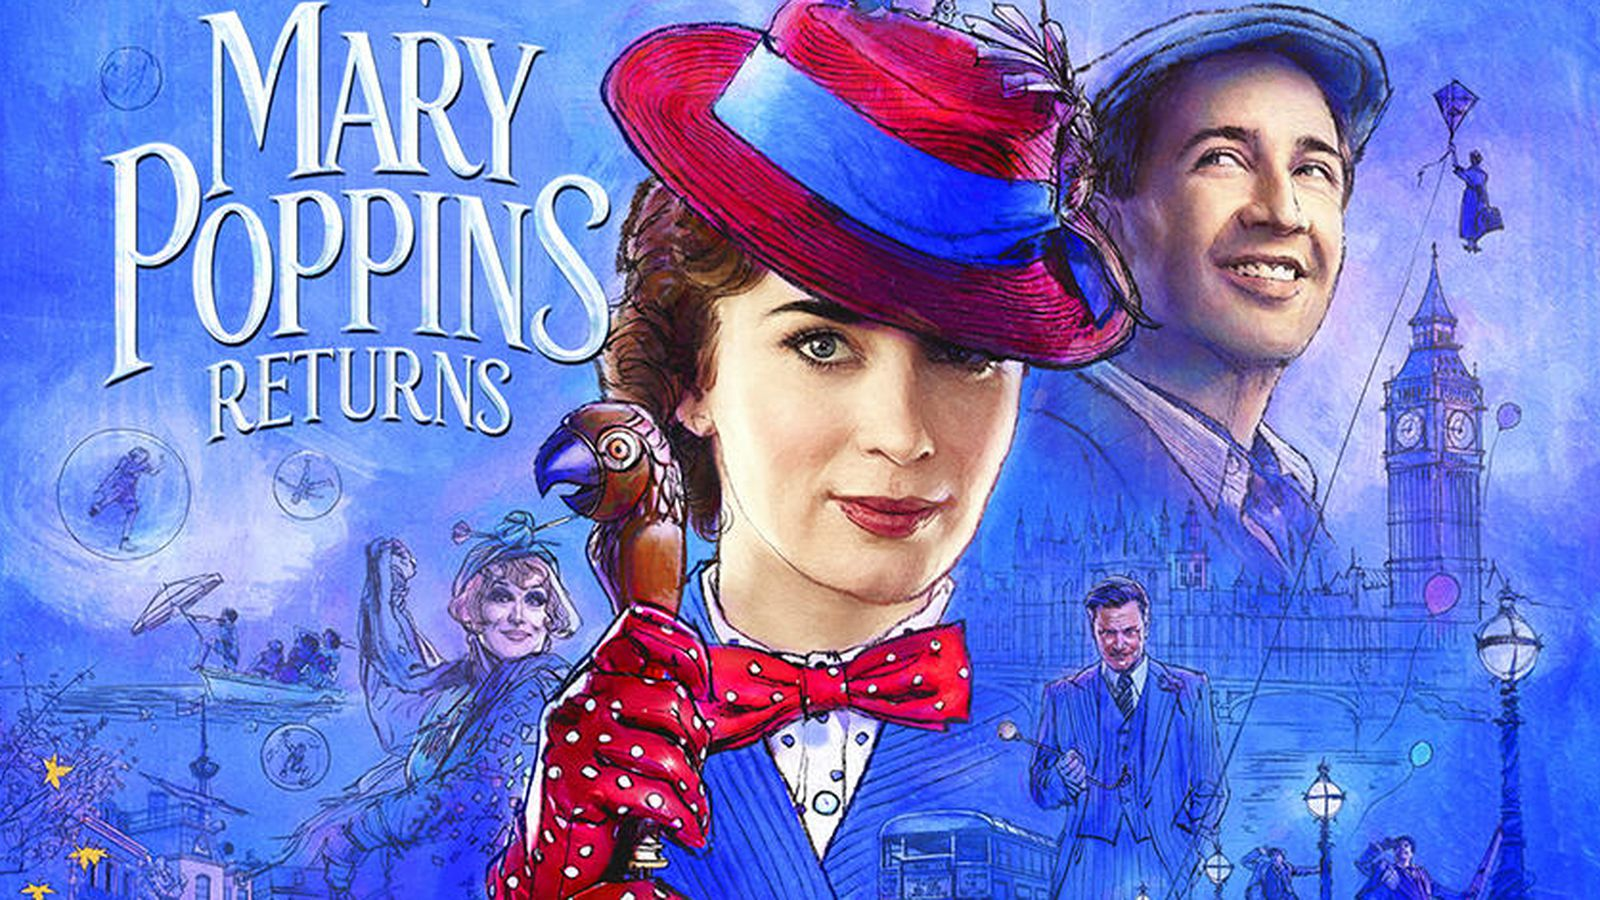 Mary Popping Returns - Free Outdoor Cinema